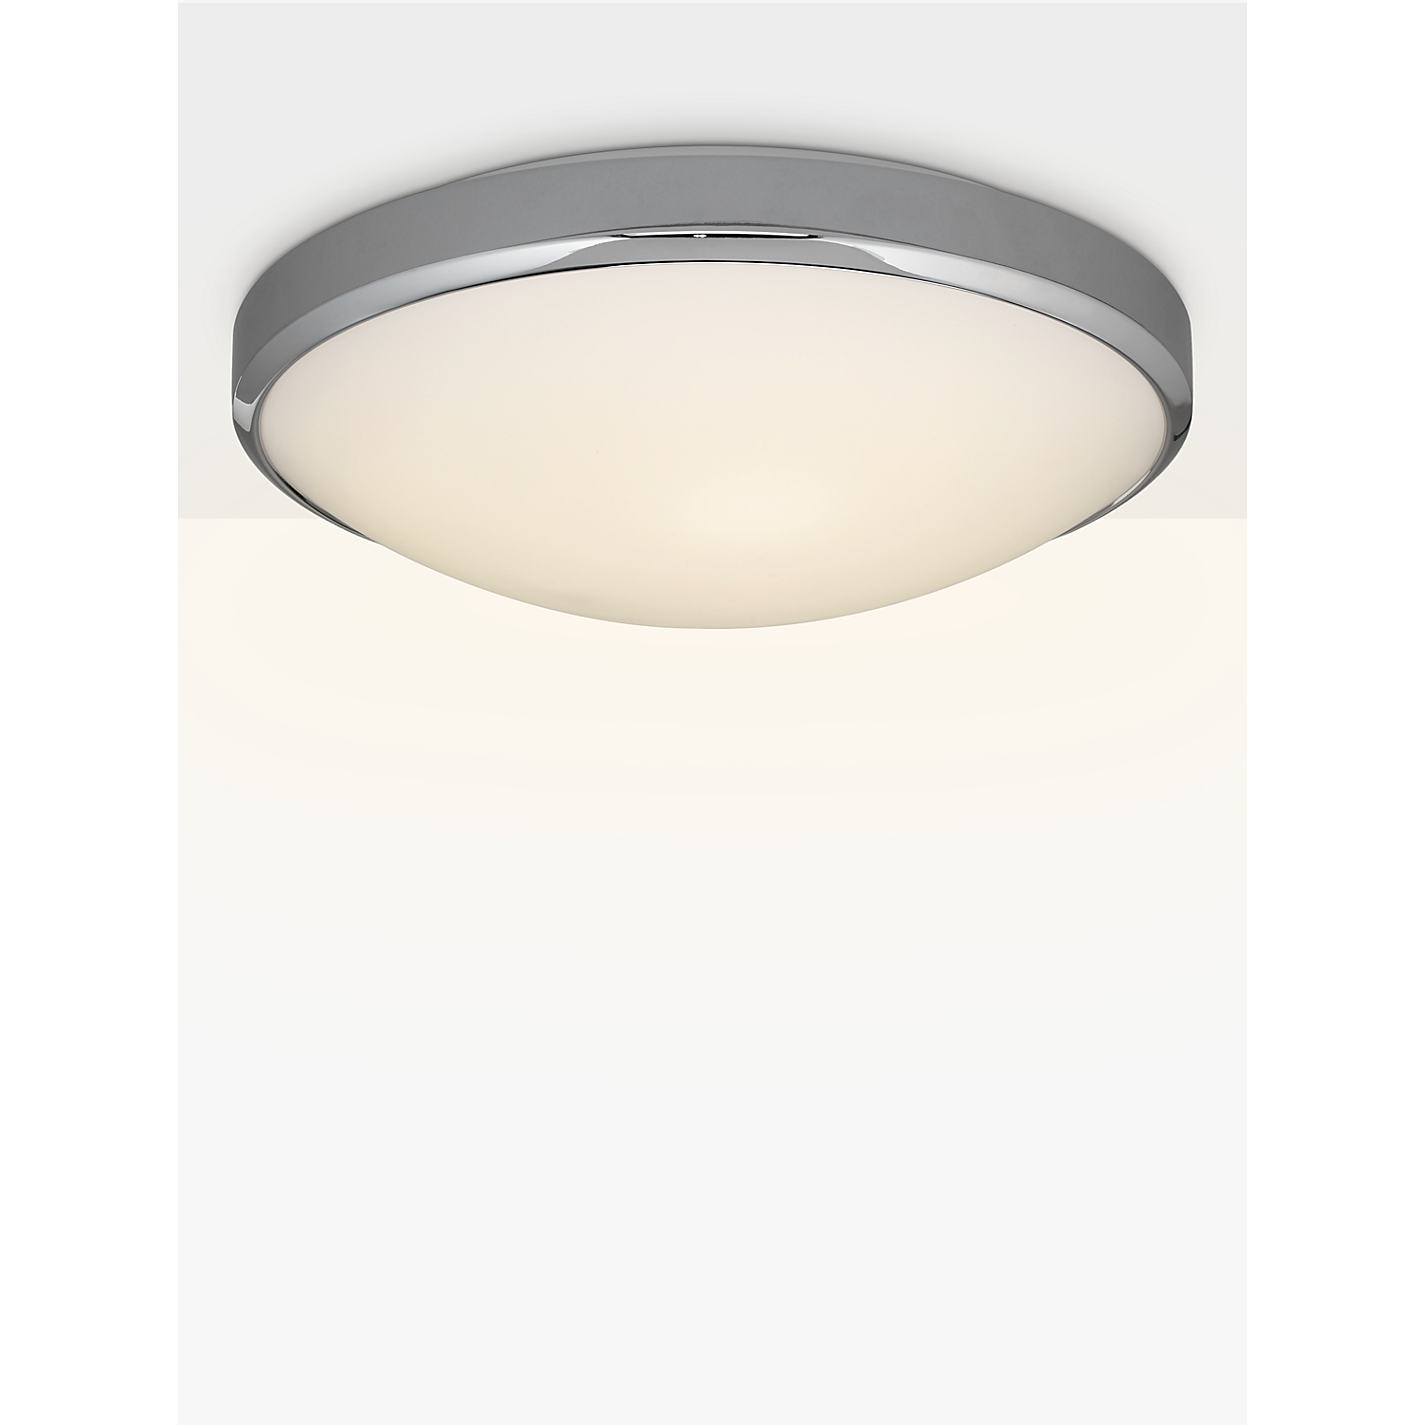 Bathroom Ceiling Lights John Lewis Buy John Lewis